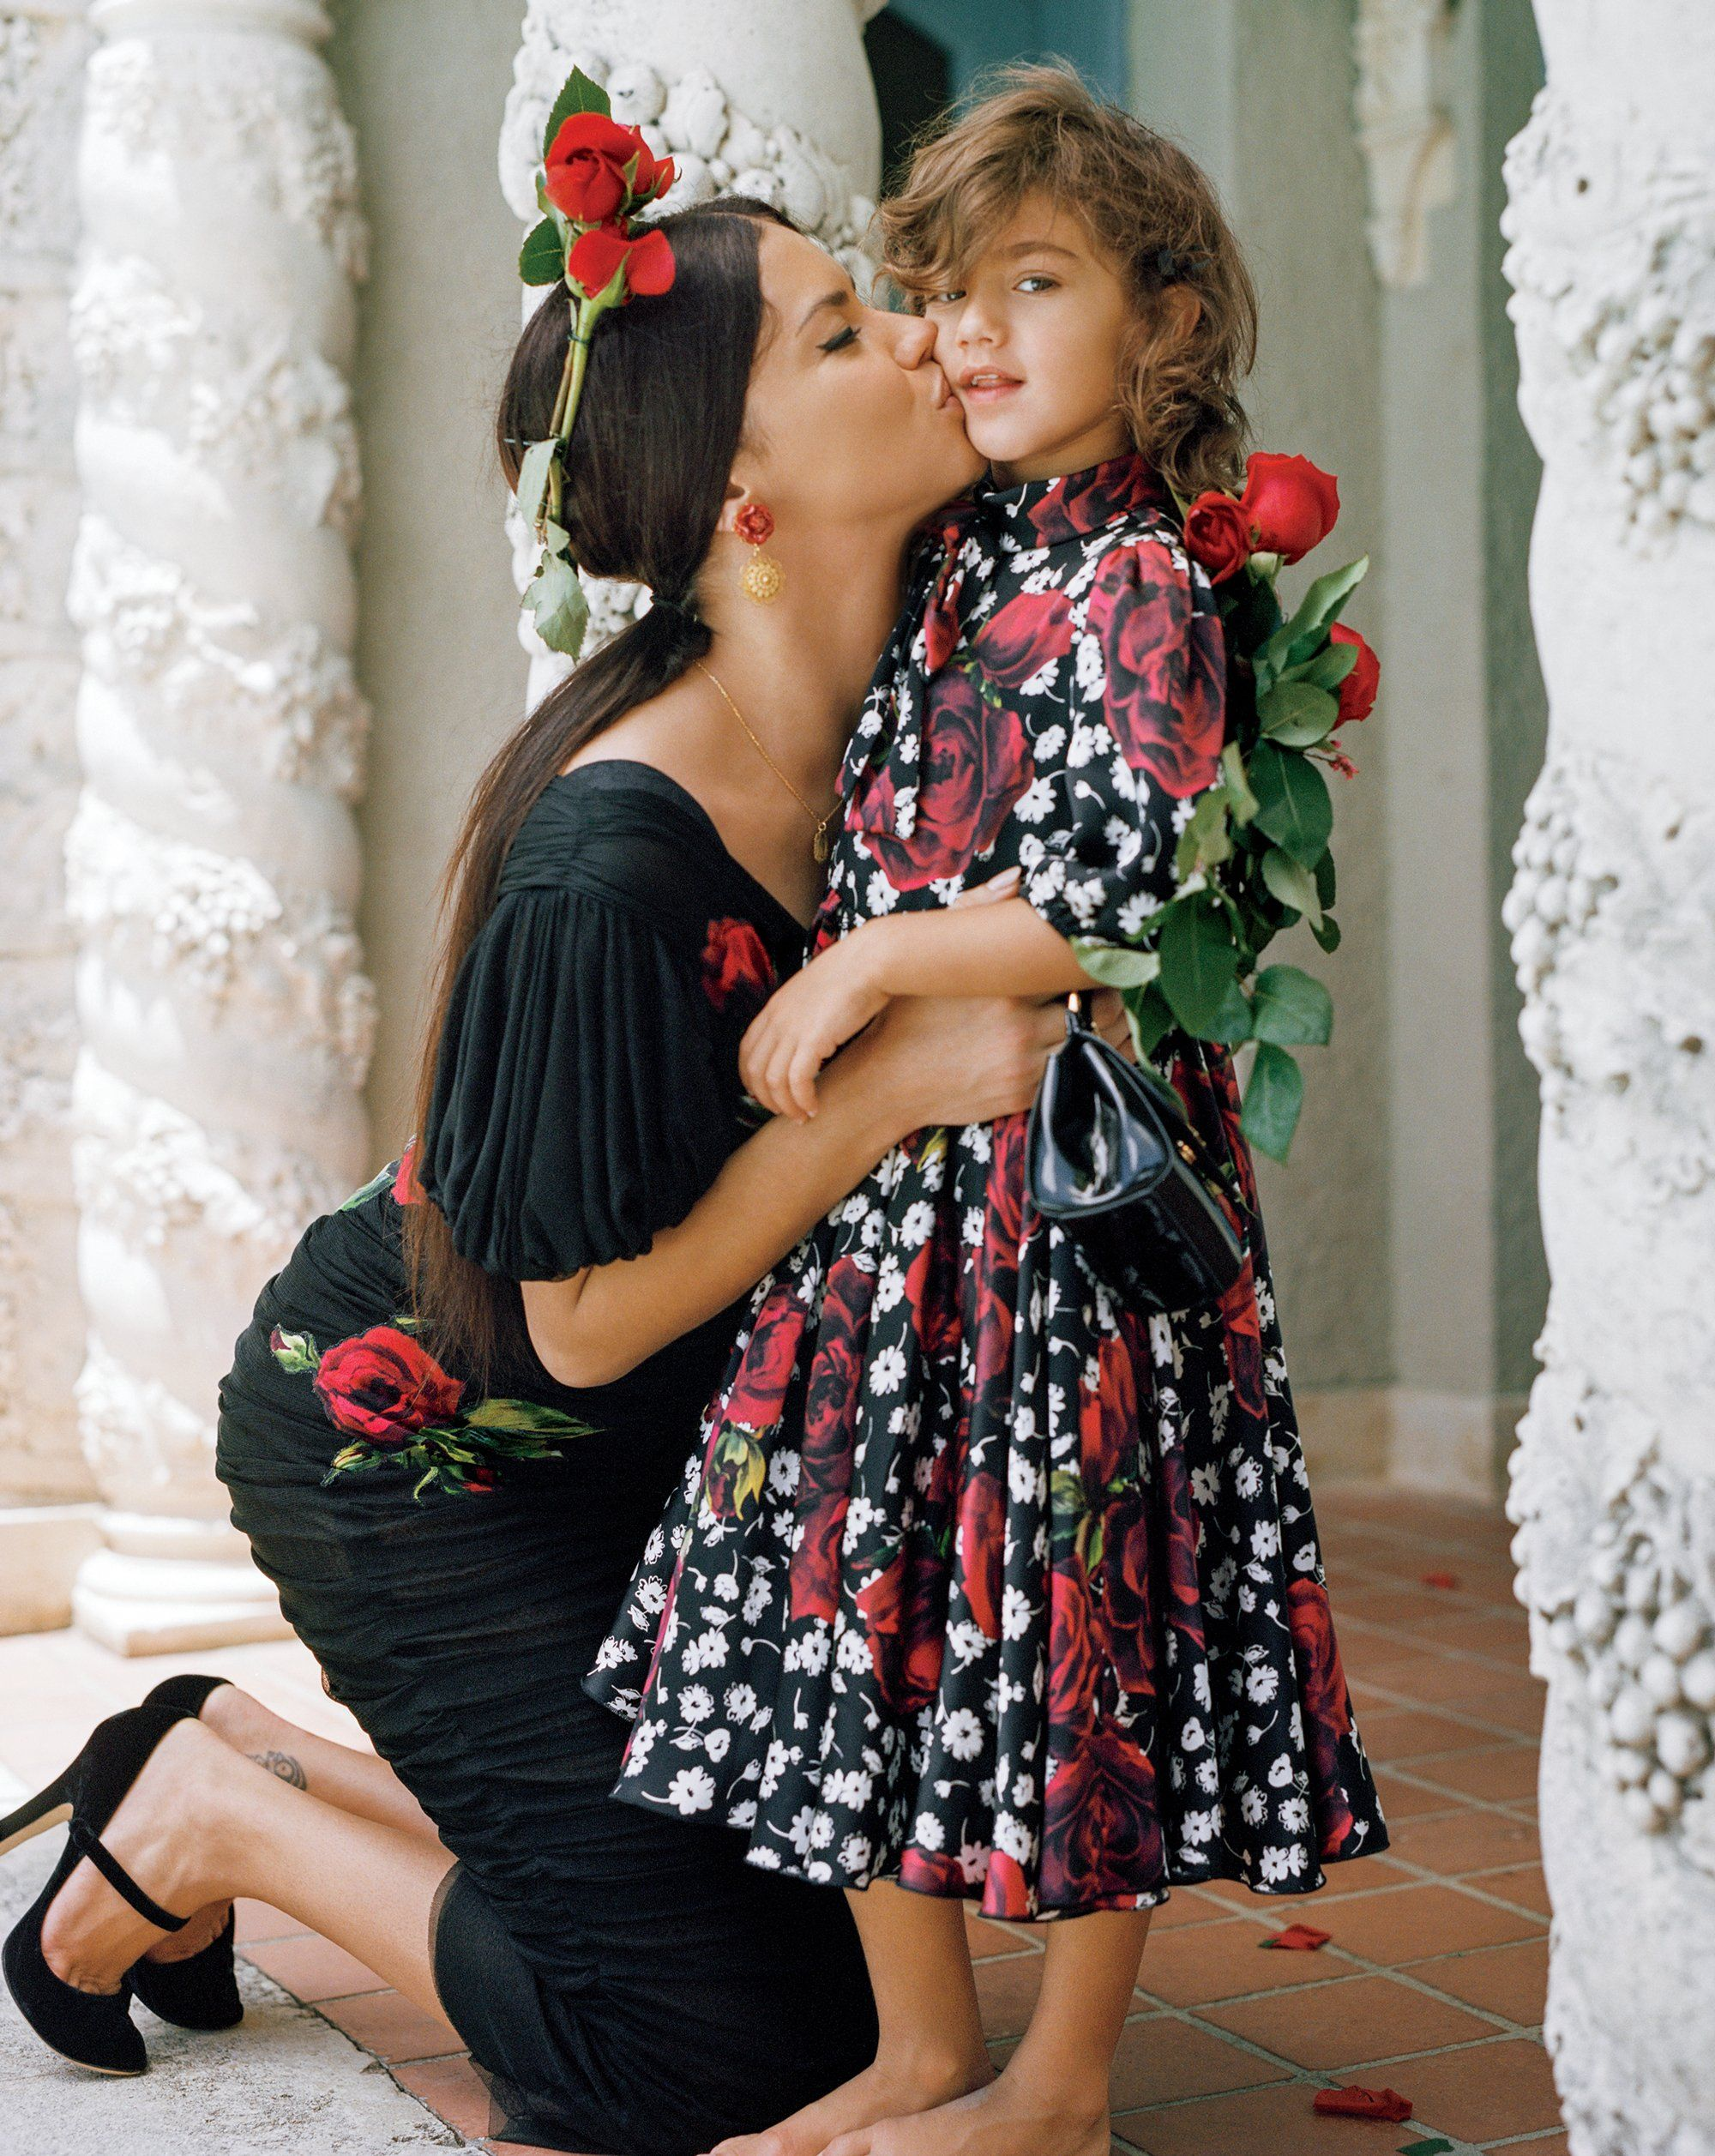 Dayse Lucidi Simple the most powerful names in fashion today | domenico dolce, fashion